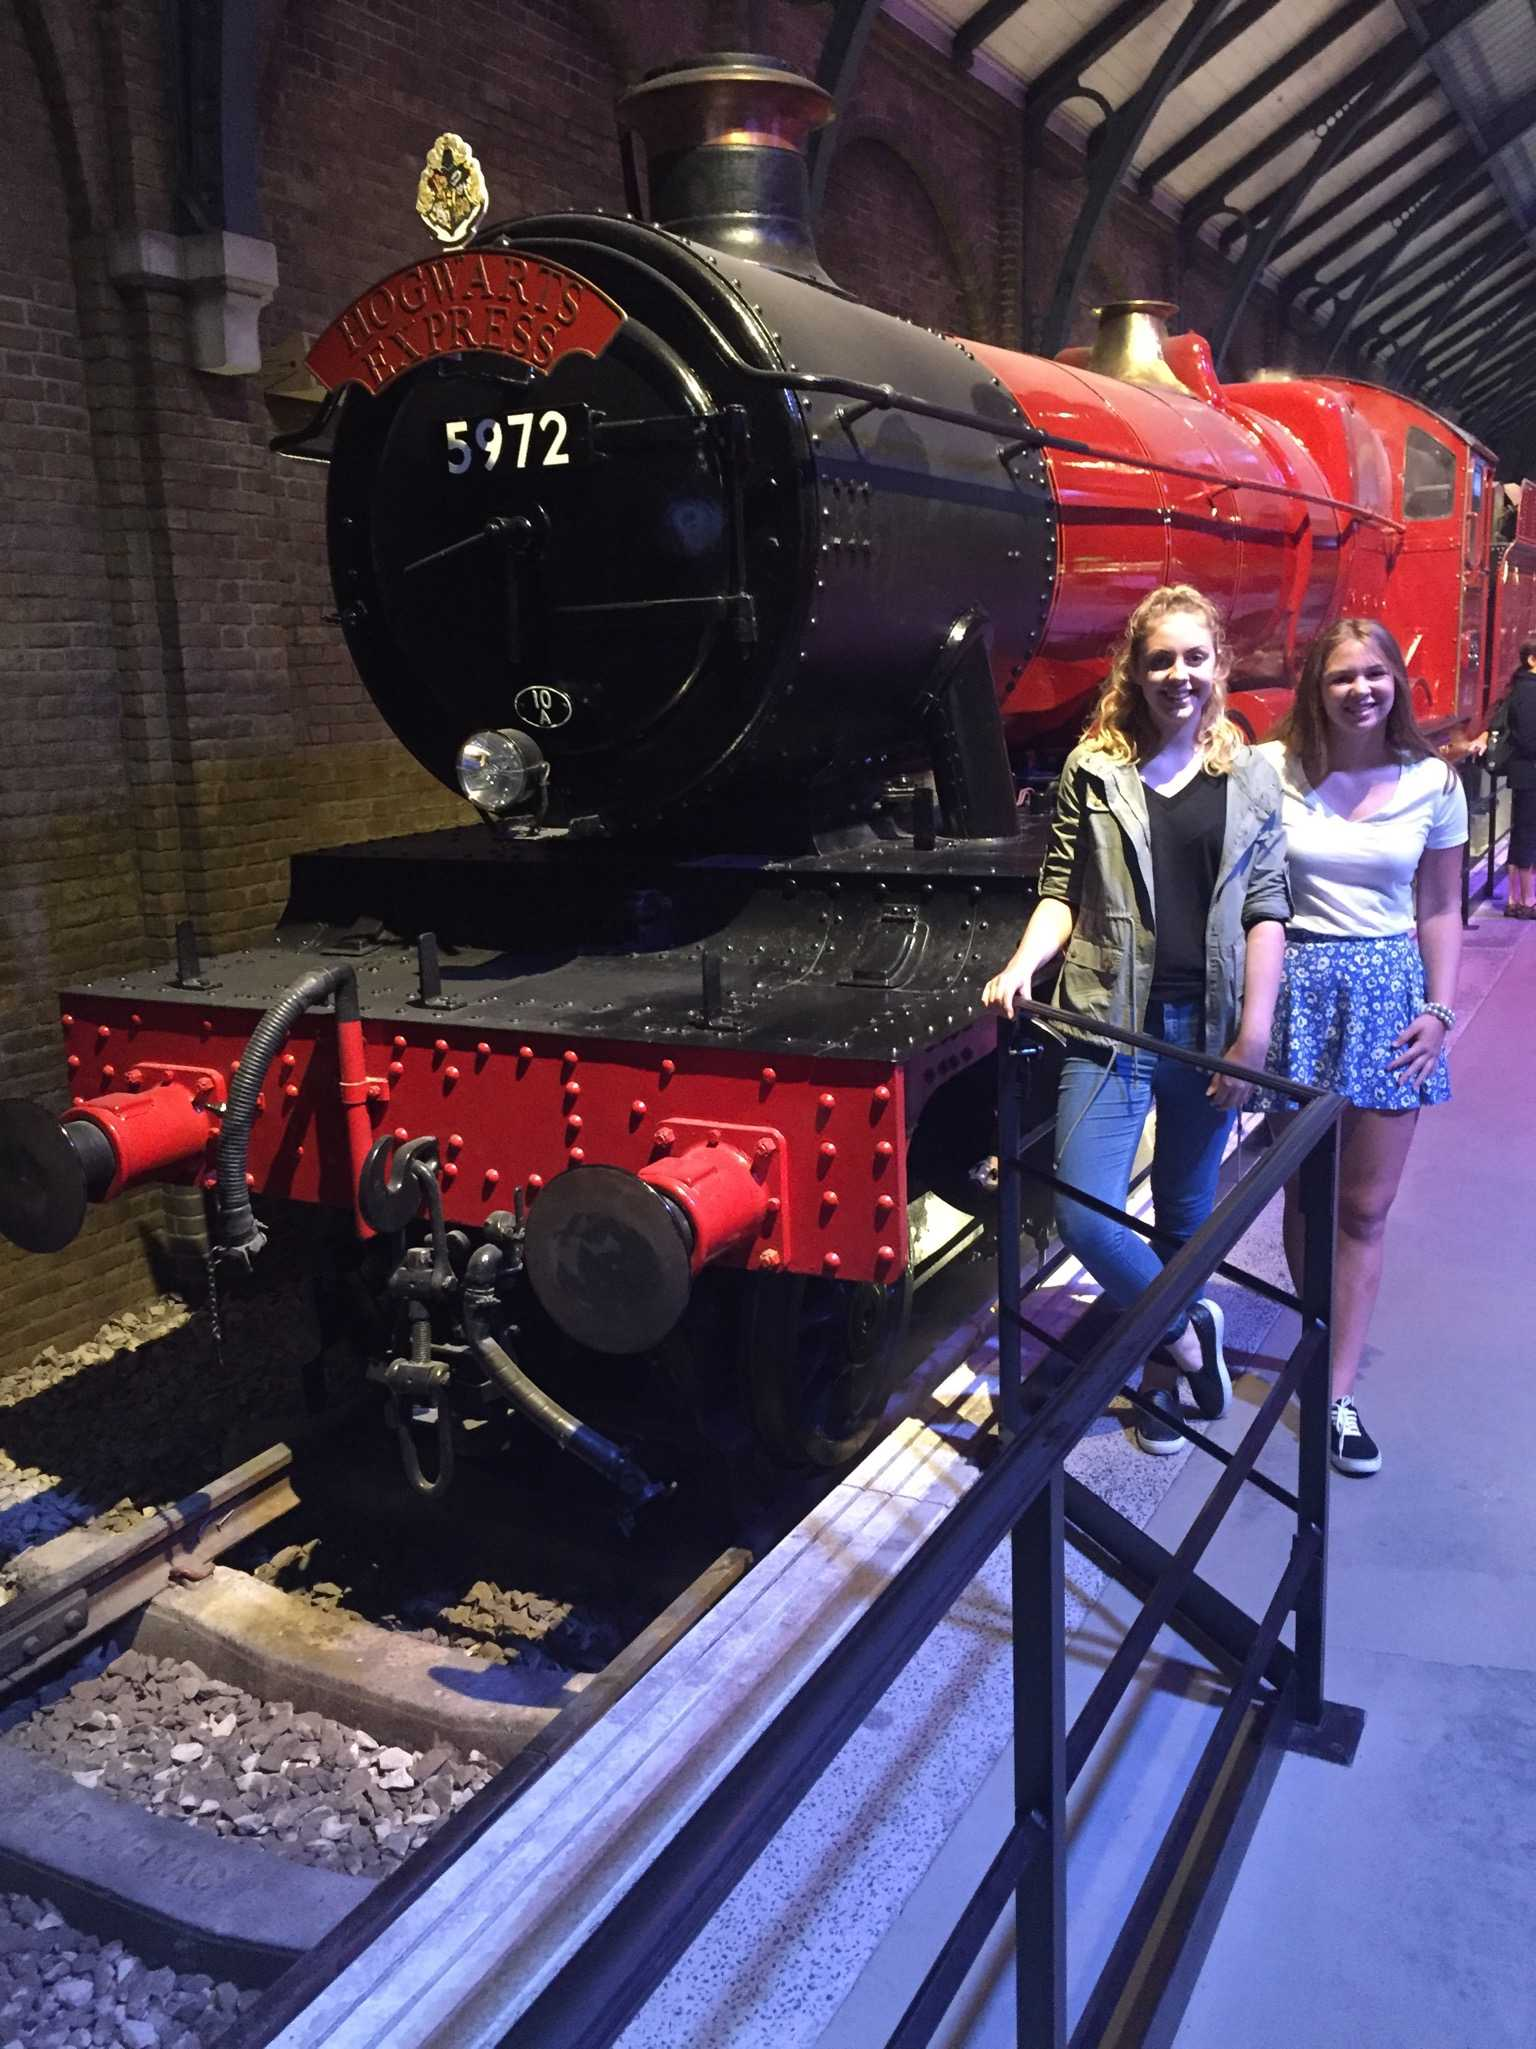 ALL ABOARD: Amy Hopkinson (left) and I decided to see what the hype was all about. Turns out the Hogwarts Express is an actual steam engine train — I thought it ran on magic.